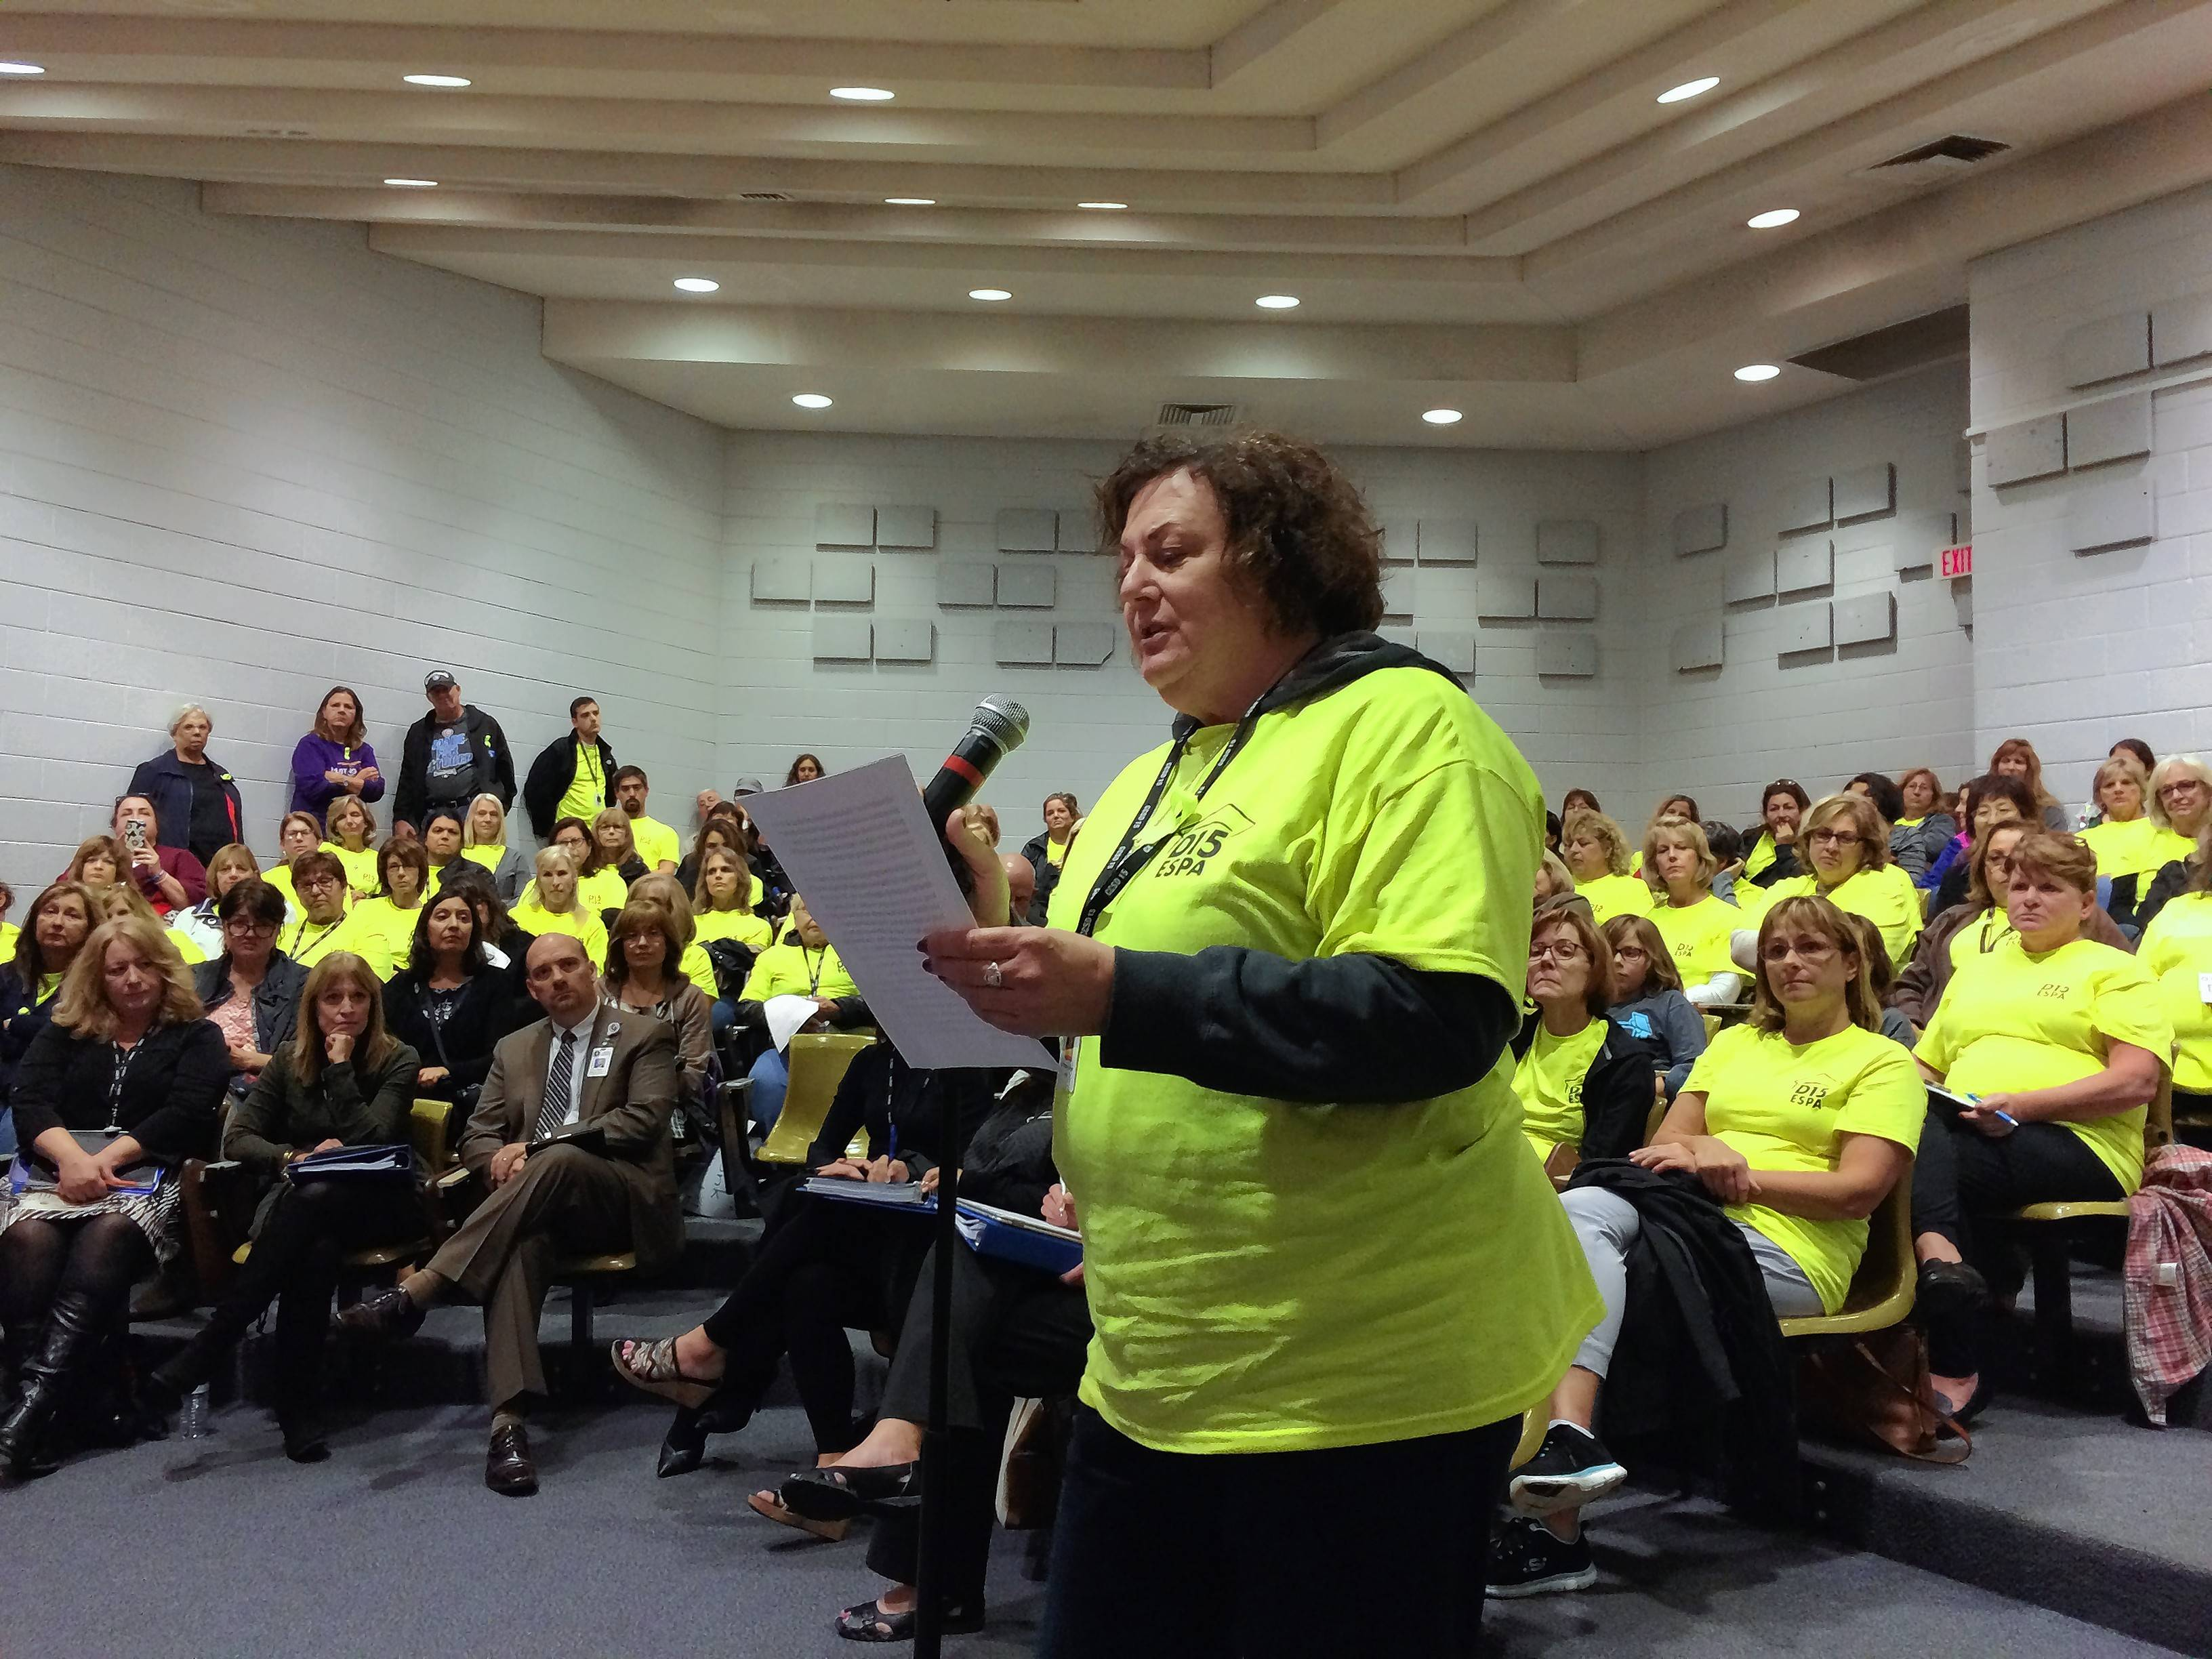 Rosella Roddy-Bartoli, a program assistant at Lincoln Elementary School in Palatine, spoke at Wednesday night's Palatine Township Elementary District 15 board meeting. She and other support employees want a new contract and may strike as early as Monday.